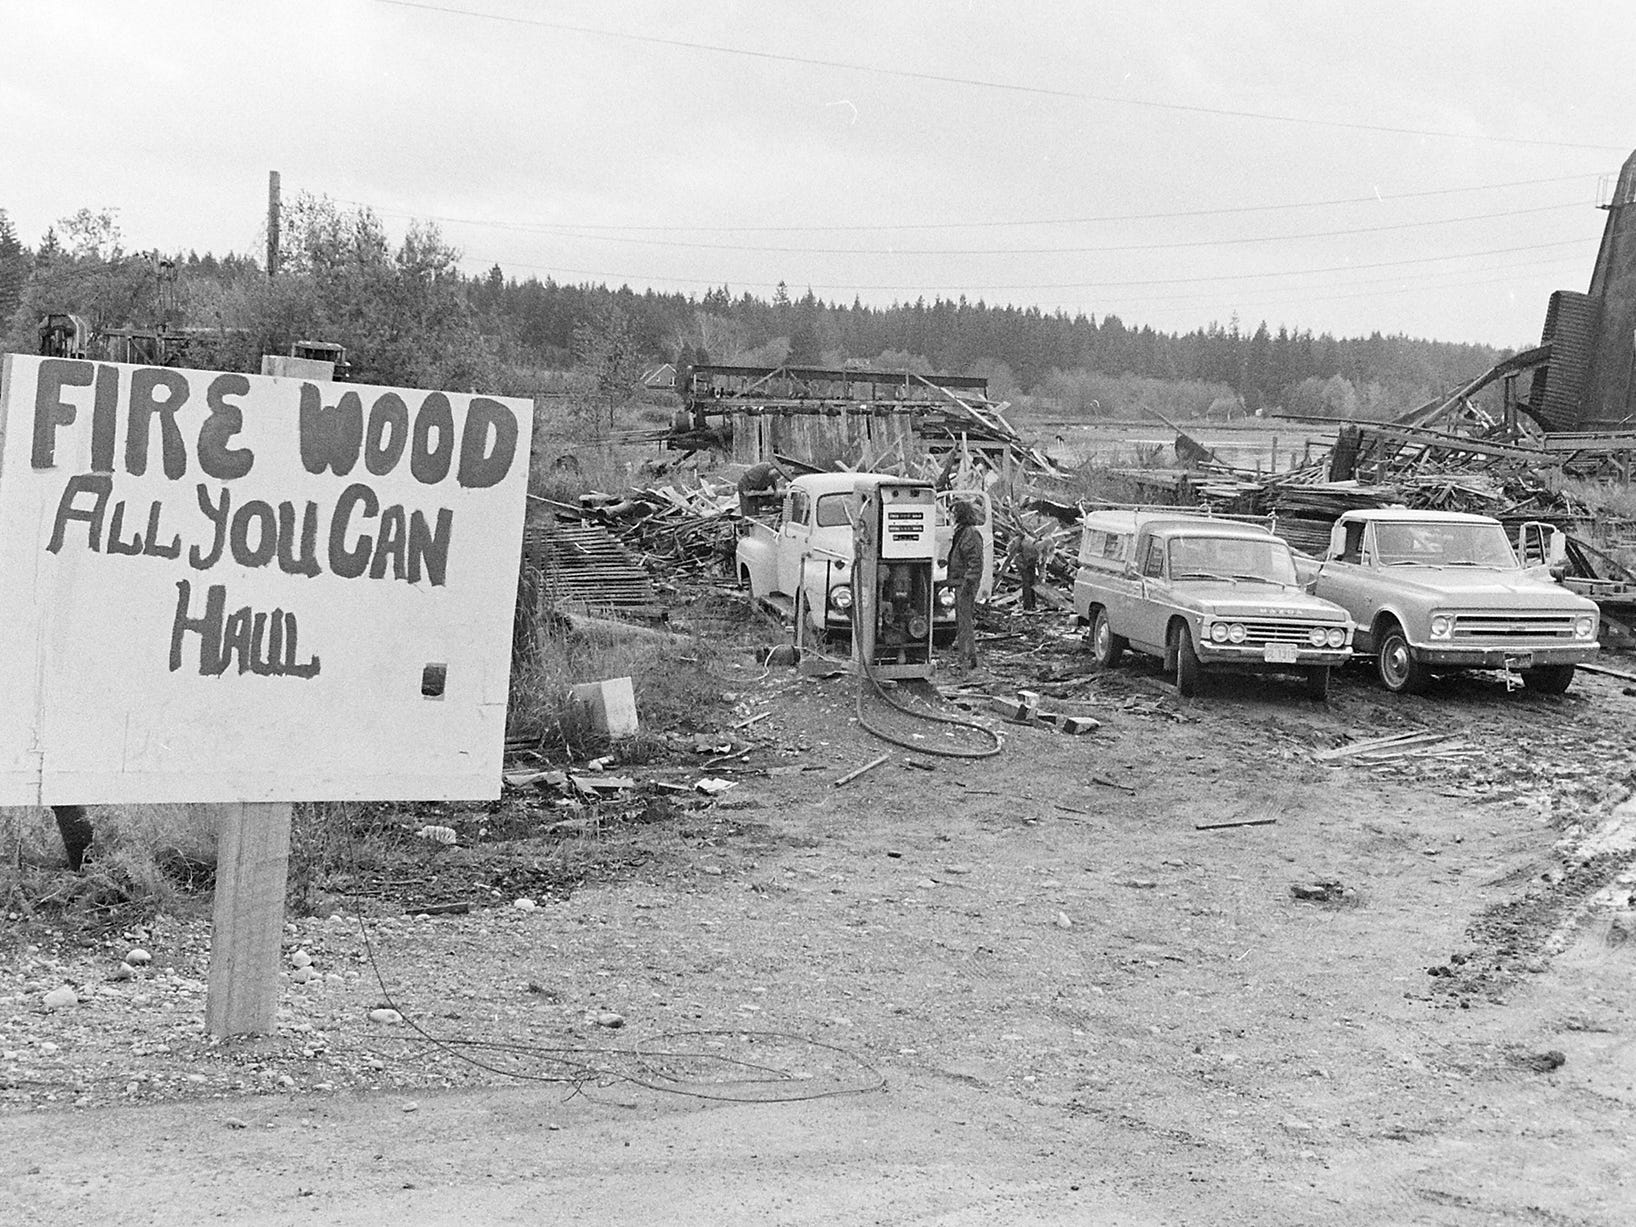 11/10/73